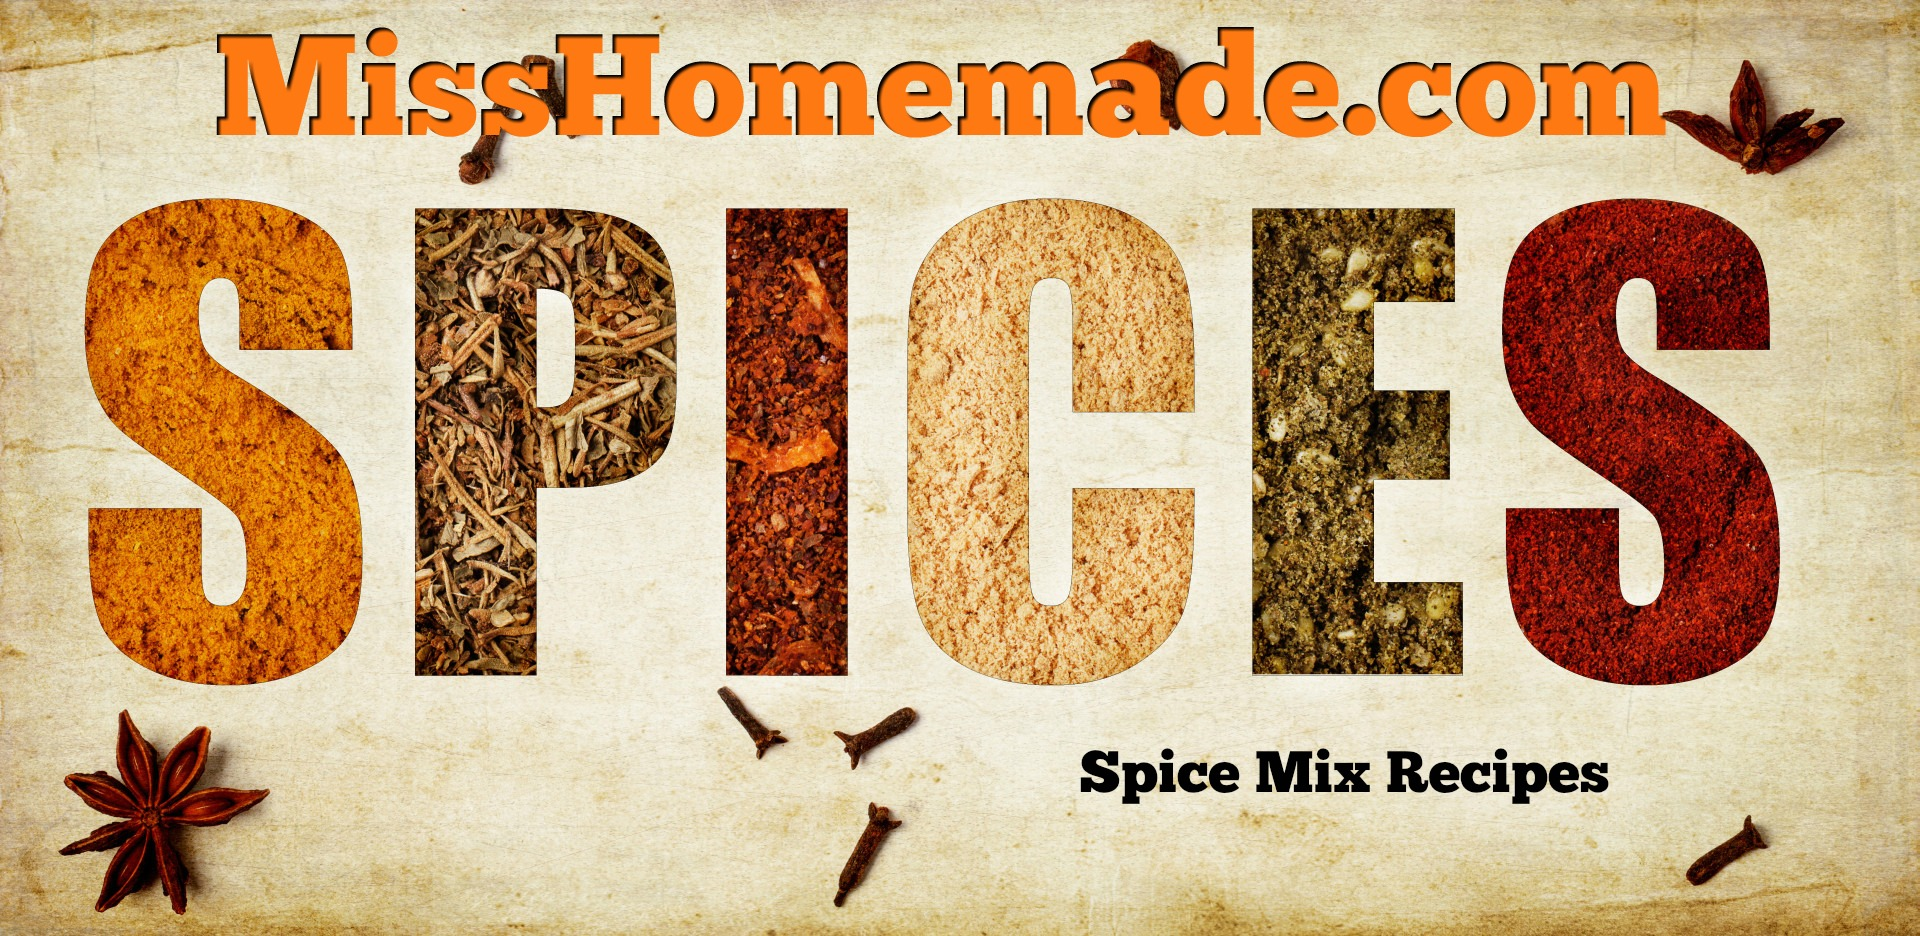 Spice Mix Recipes - make your own pantry seasonings from scratch MissHomemade.com